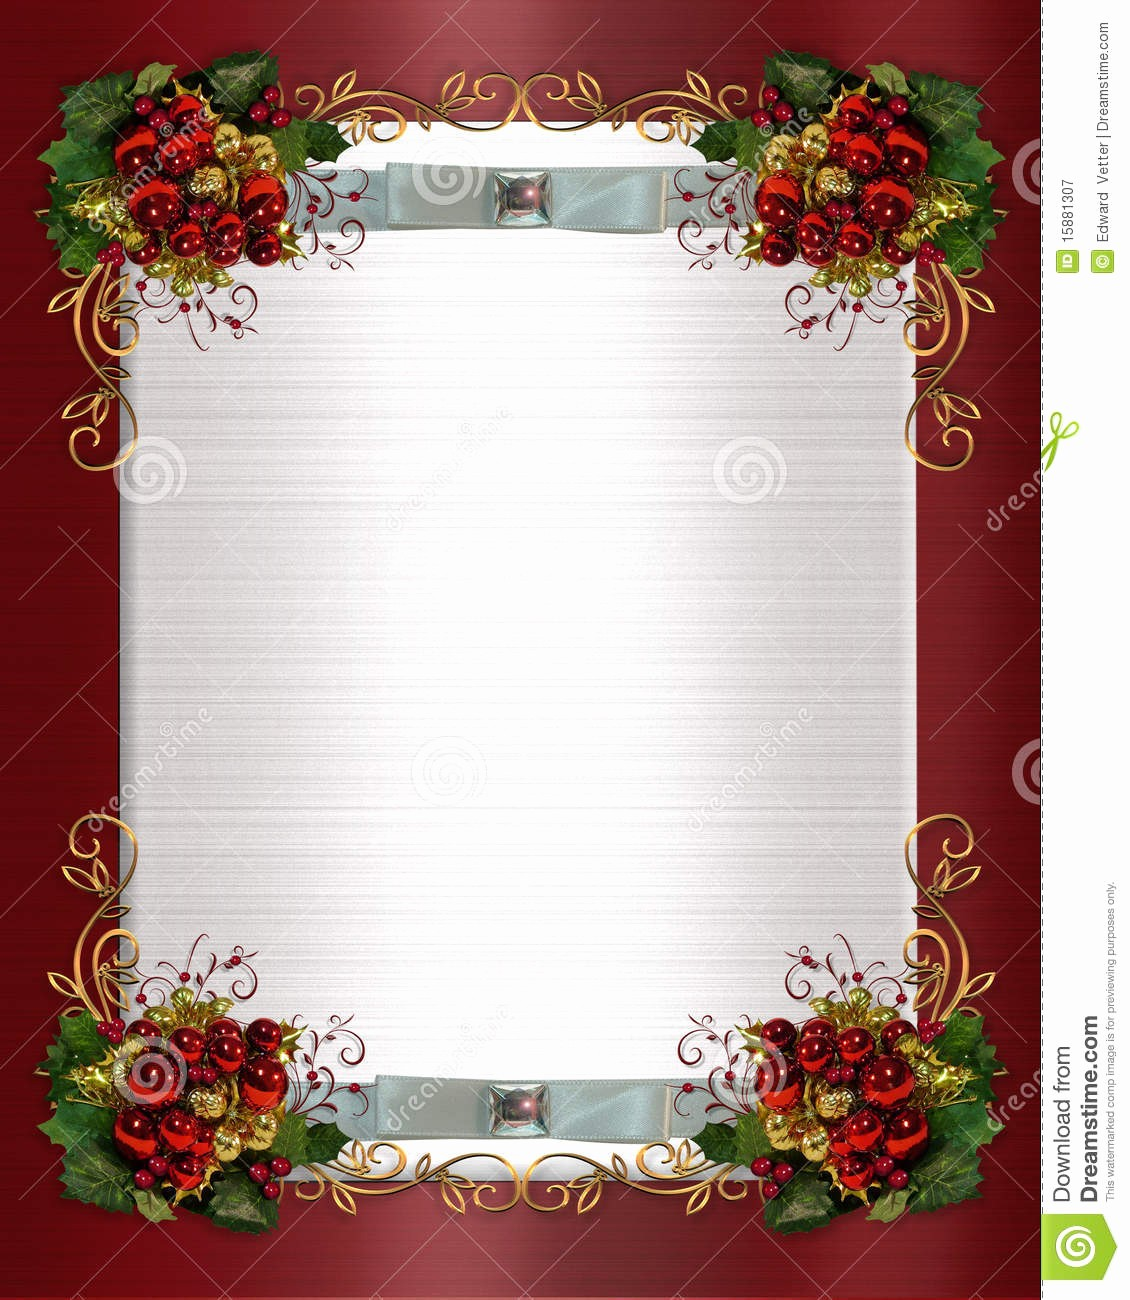 Free Printable Christmas Invitations Cards Fresh Free Printable Christmas Borders for Invitations